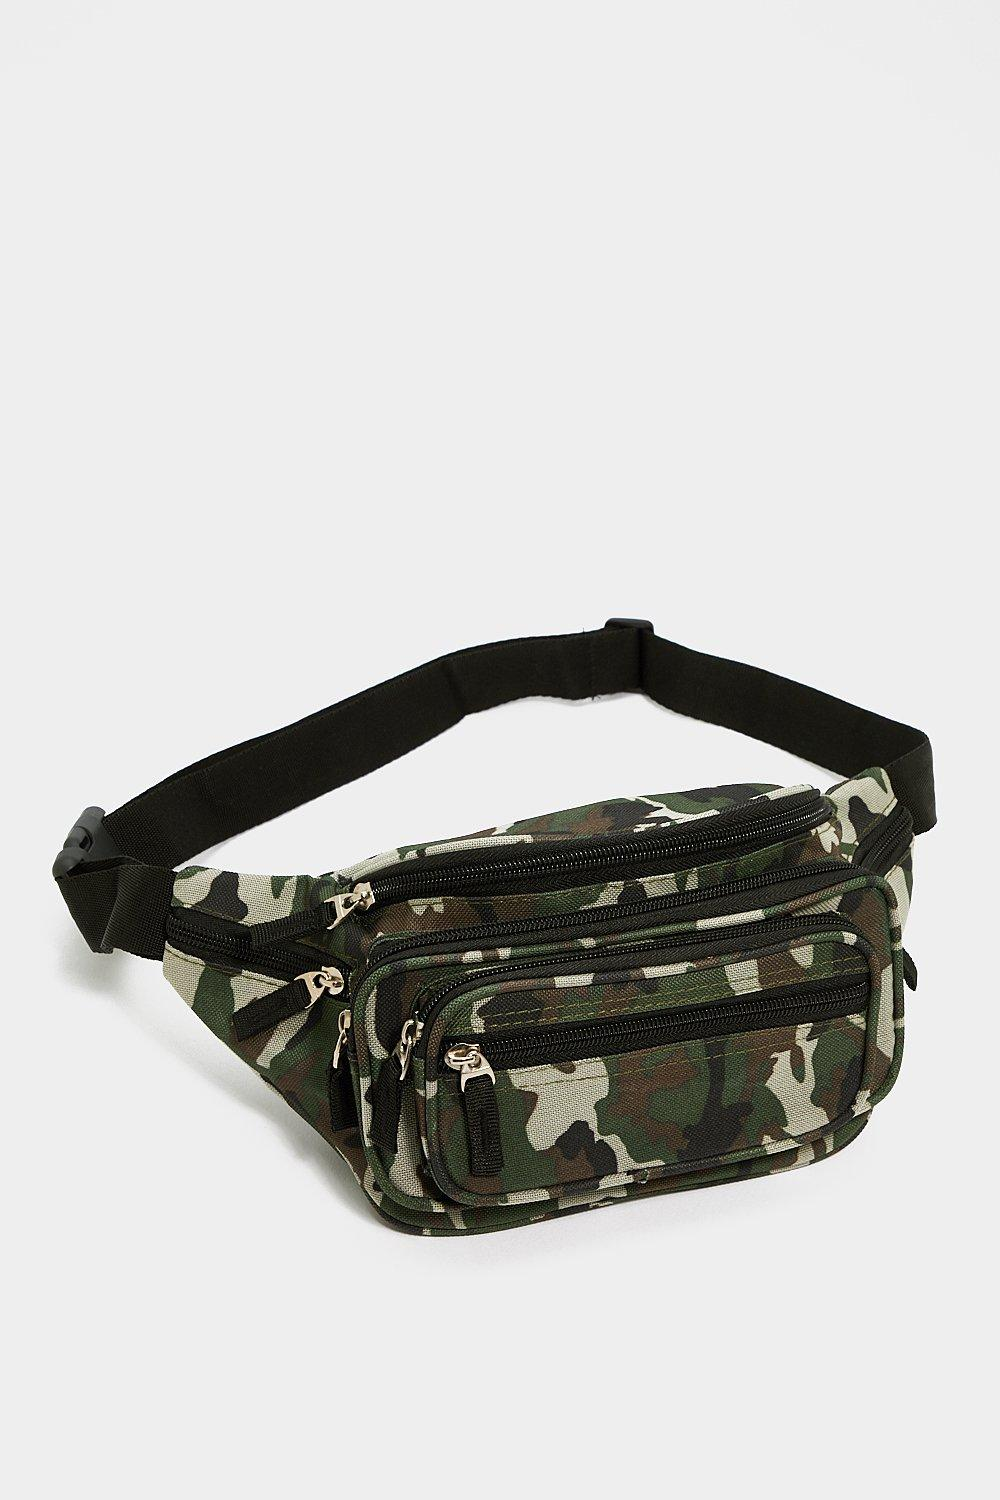 WANT You Know the Drill Camo Fanny Pack  57610e4a5